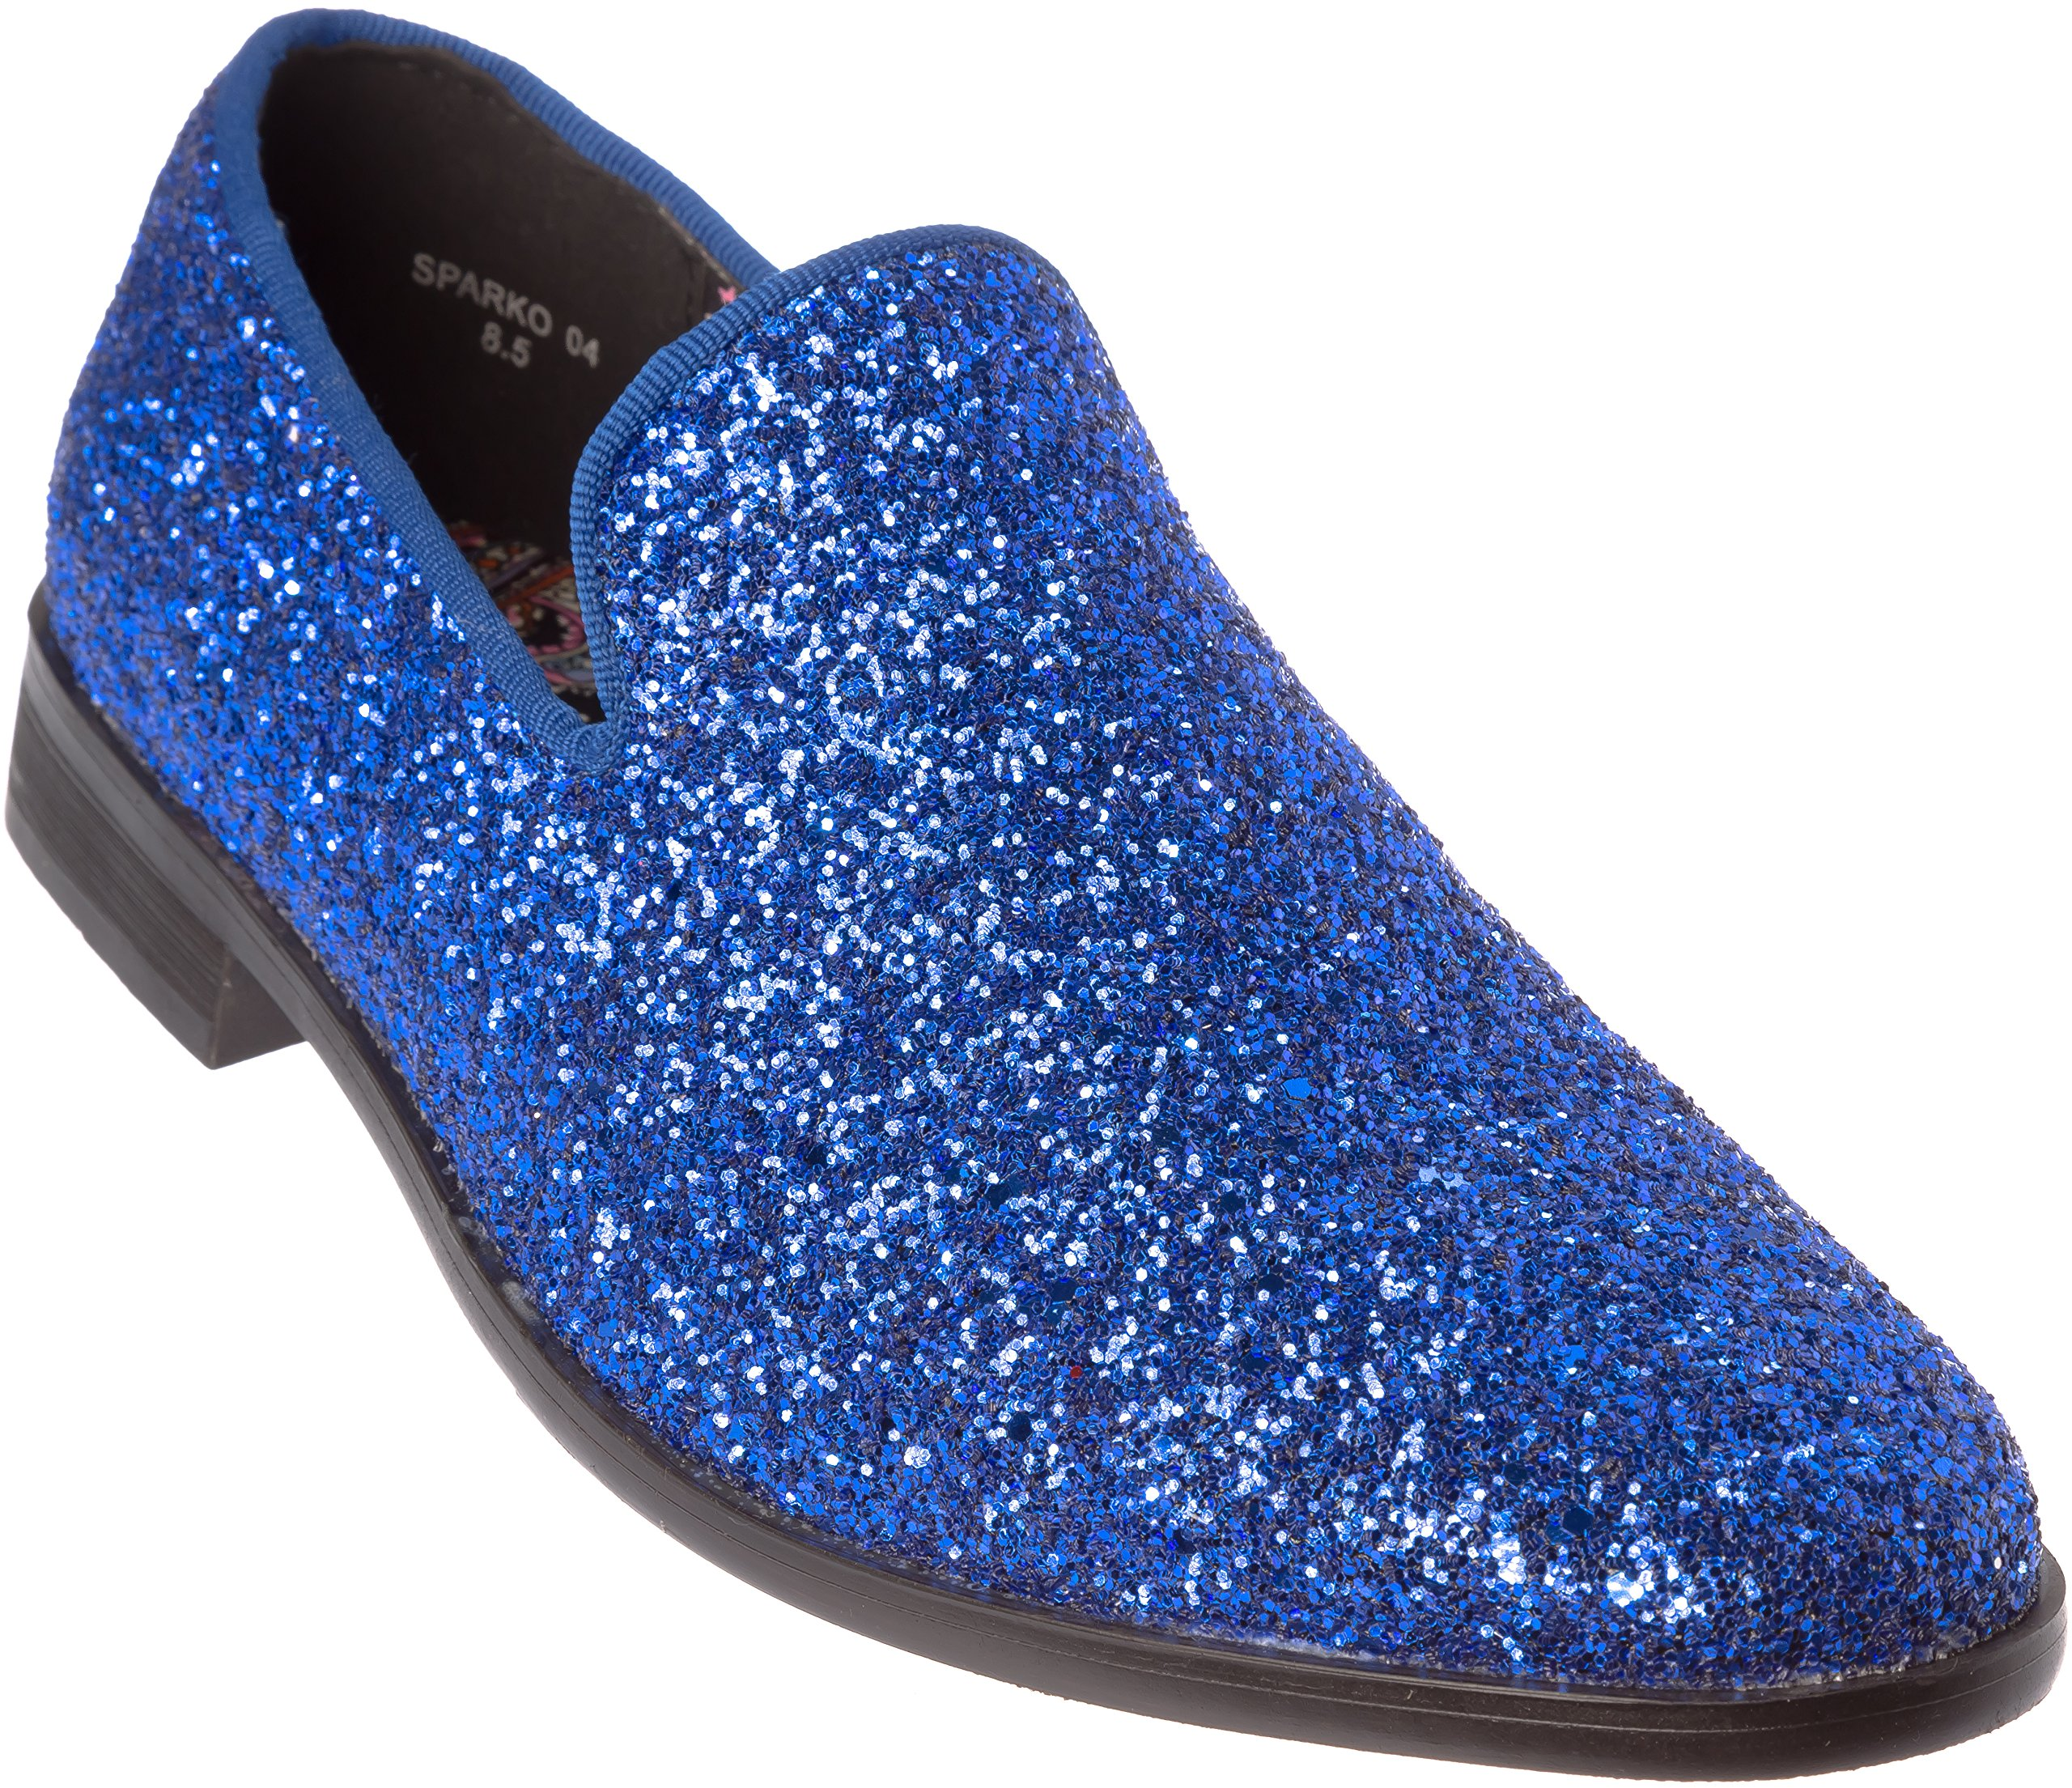 Alberto Fellini Mens Loafer-Fashion Slip-On Sparkling-Glitter Royal Blue Dress-Shoes Size 13